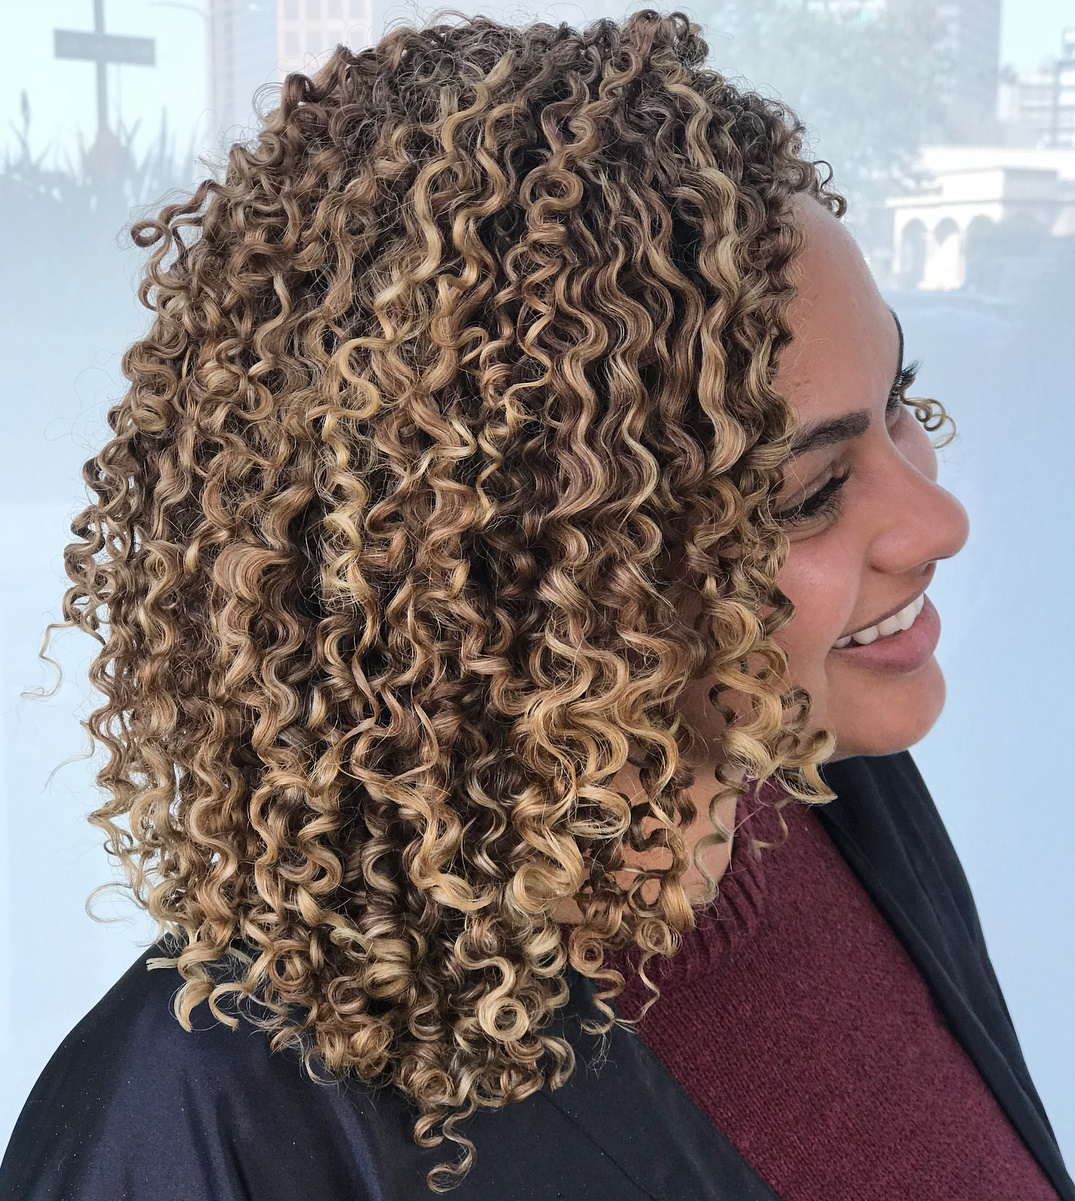 50 Natural Curly Hairstyles Curly Hair Ideas To Try In 2020 Hair Adviser